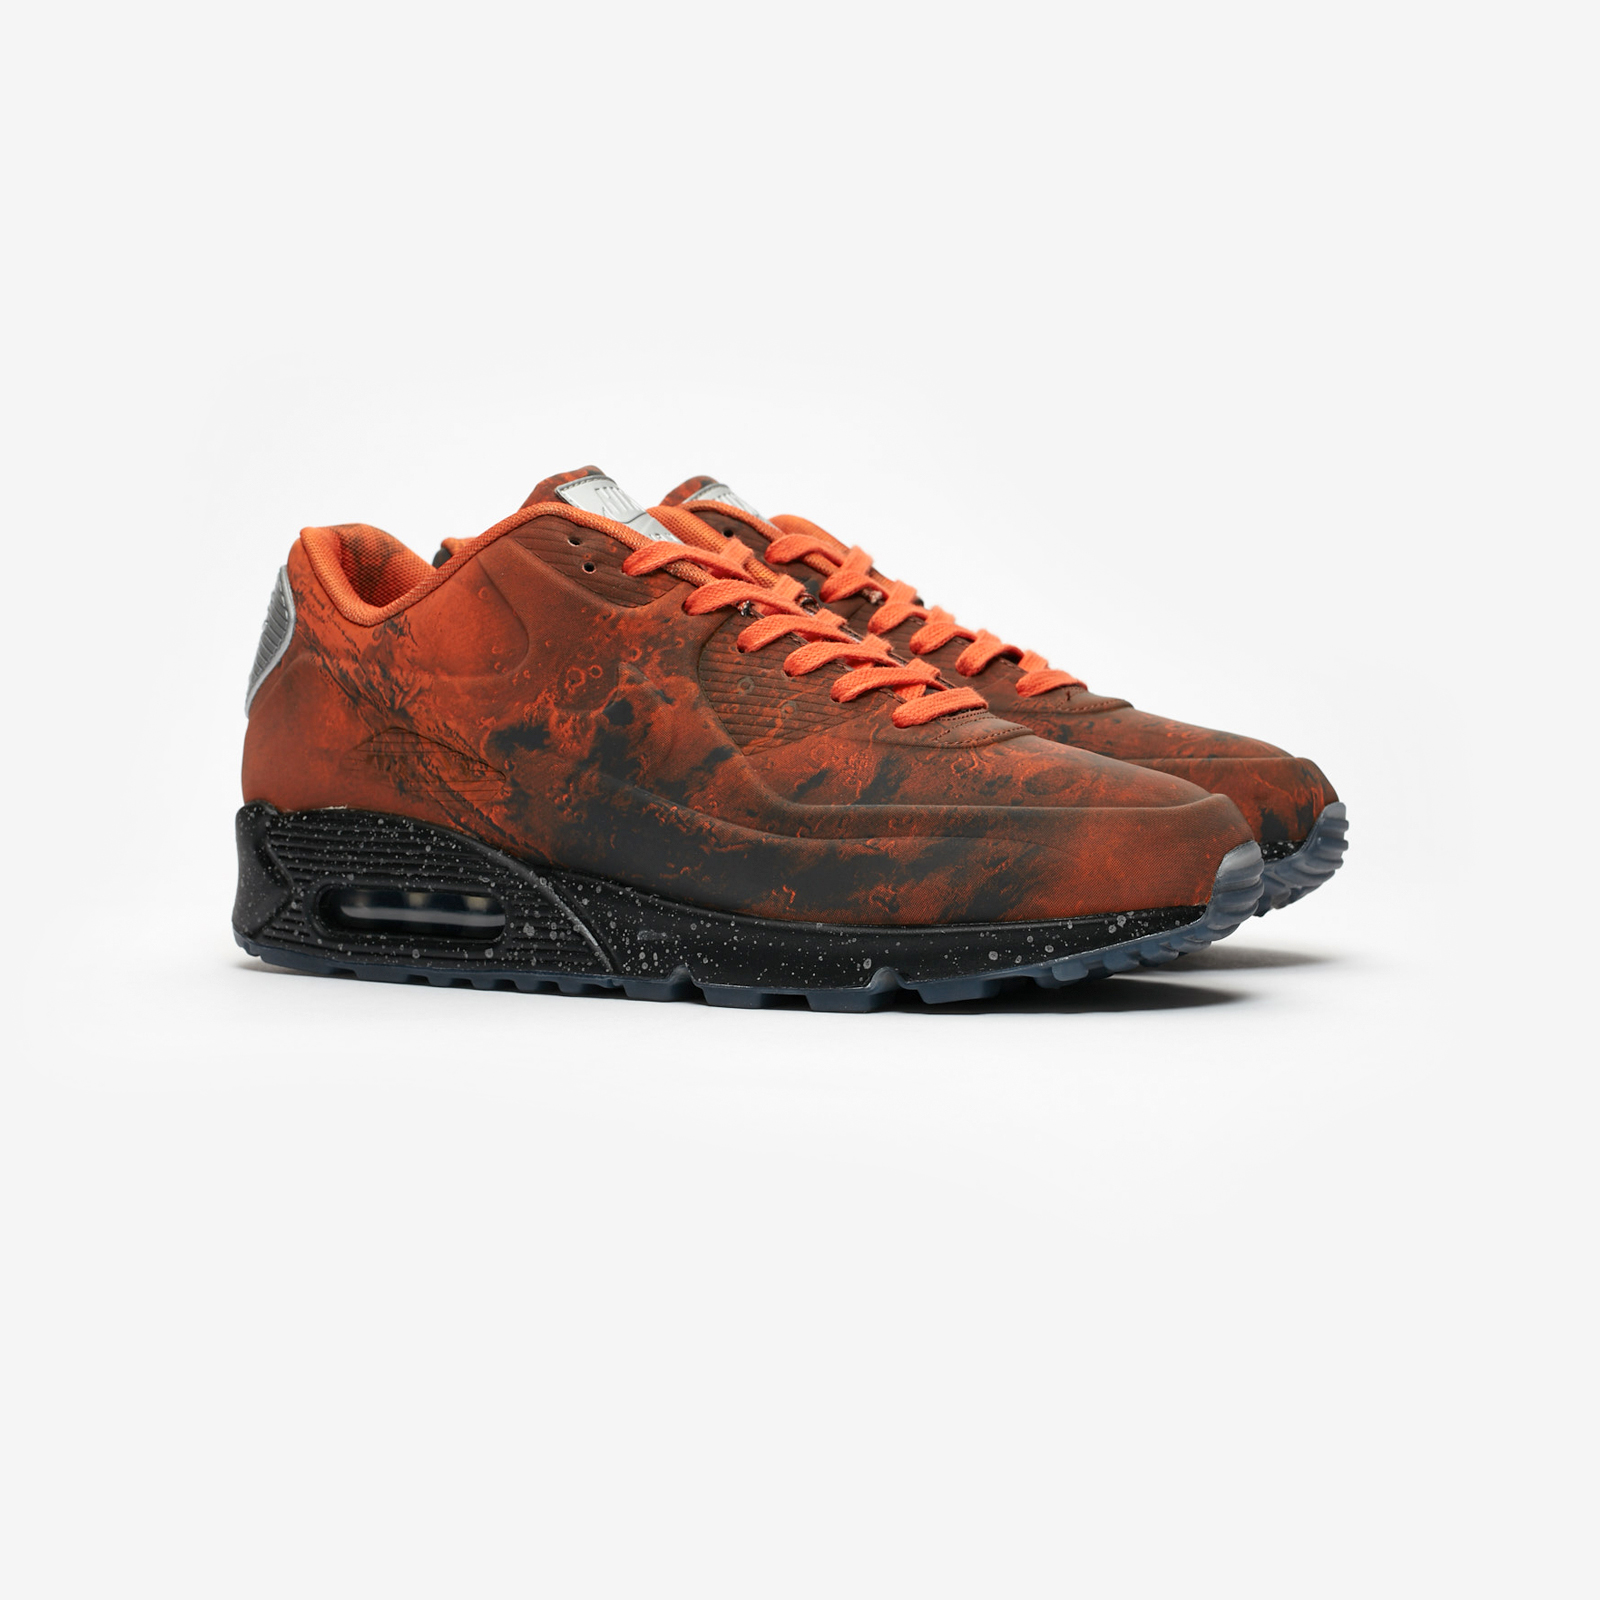 Nike Air Max 90 QS Cd0920 600 Sneakersnstuff I Sneakers